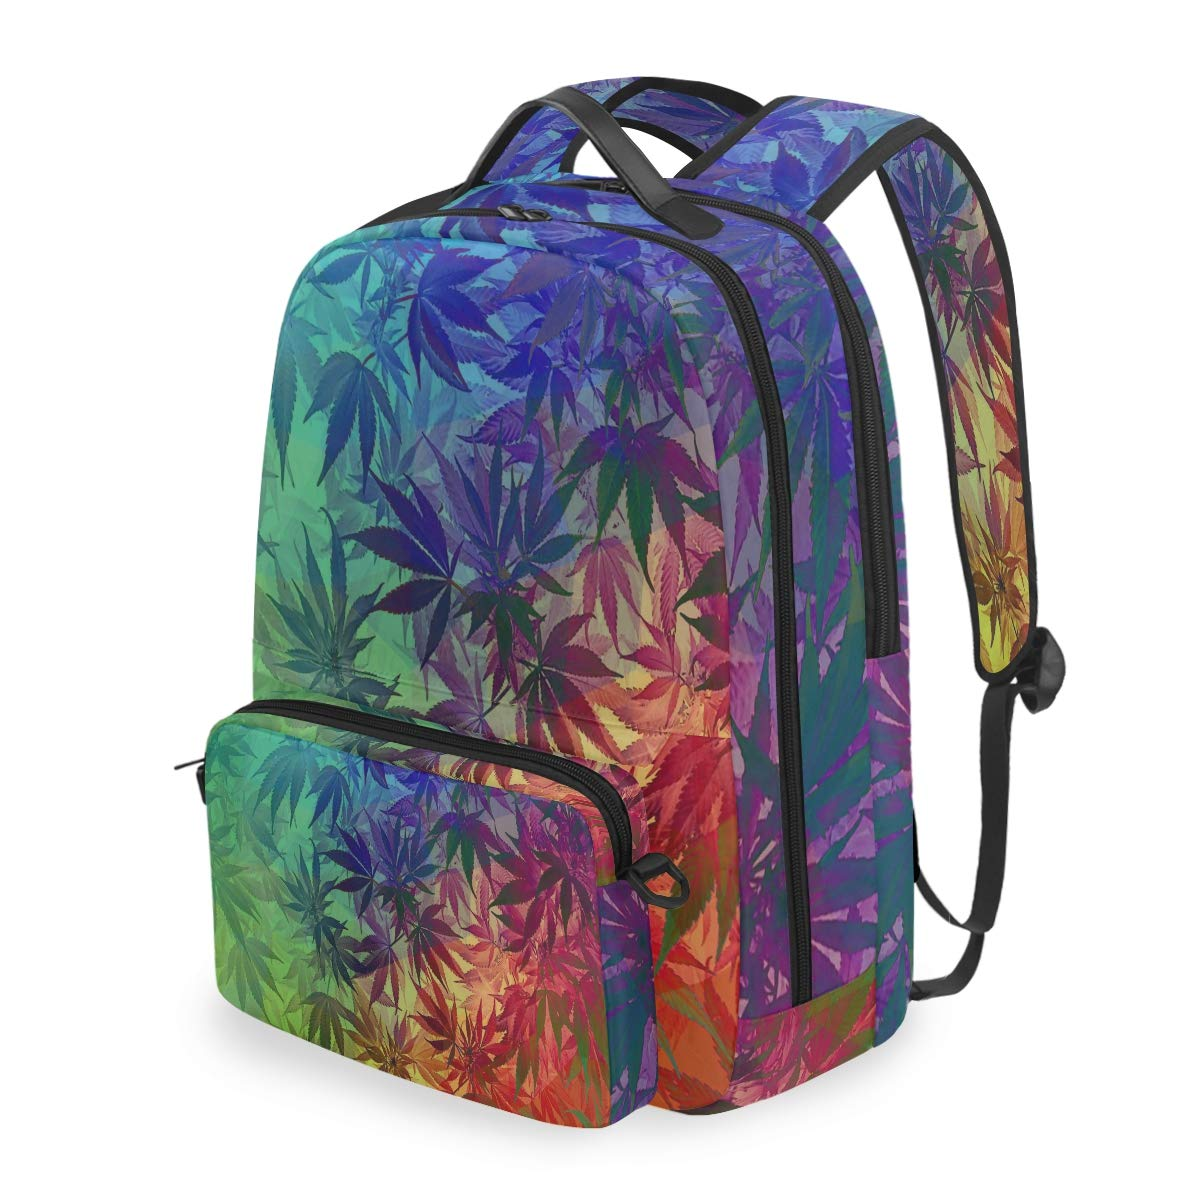 MAHU Backpack Rainbow Cannabis Hemp Leaves Detachable College Bag Travel Zipper Bookbag Hiking Shoulder Crossbody Bag Daypack for Women Men